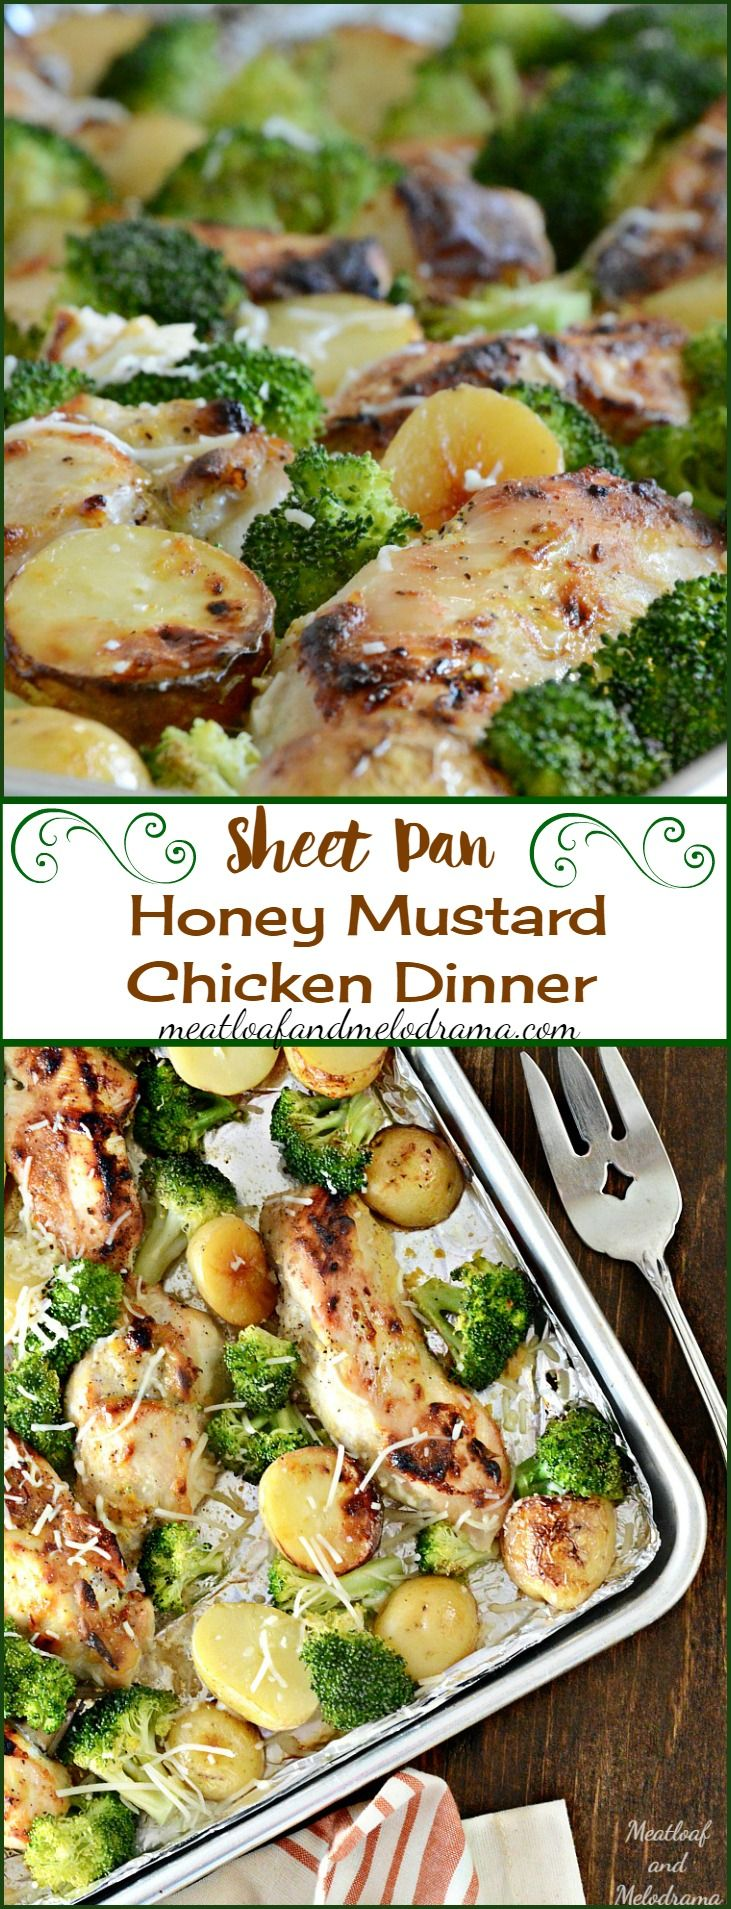 Sheet Pan Honey Mustard Chicken Dinner with Broccolie and Potatoes